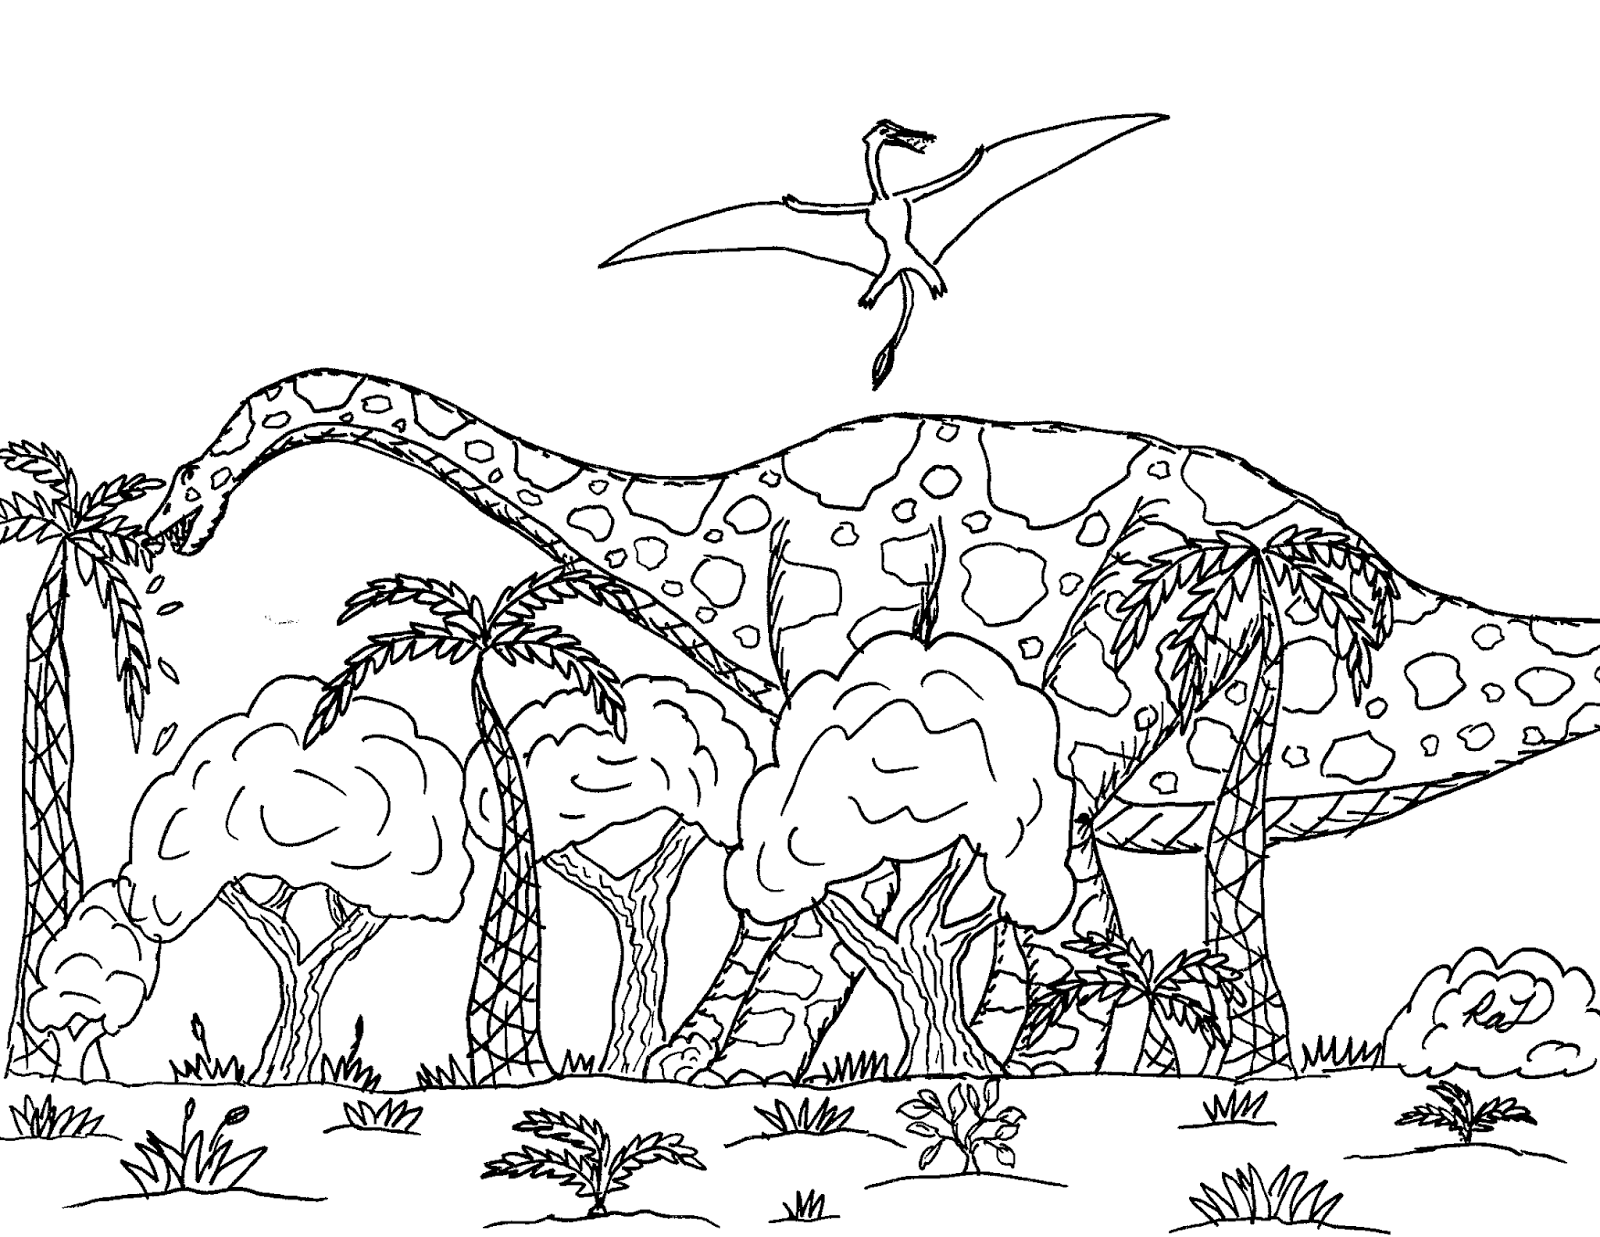 Robin\'s Great Coloring Pages: Herbivorous Dinosaur Diets